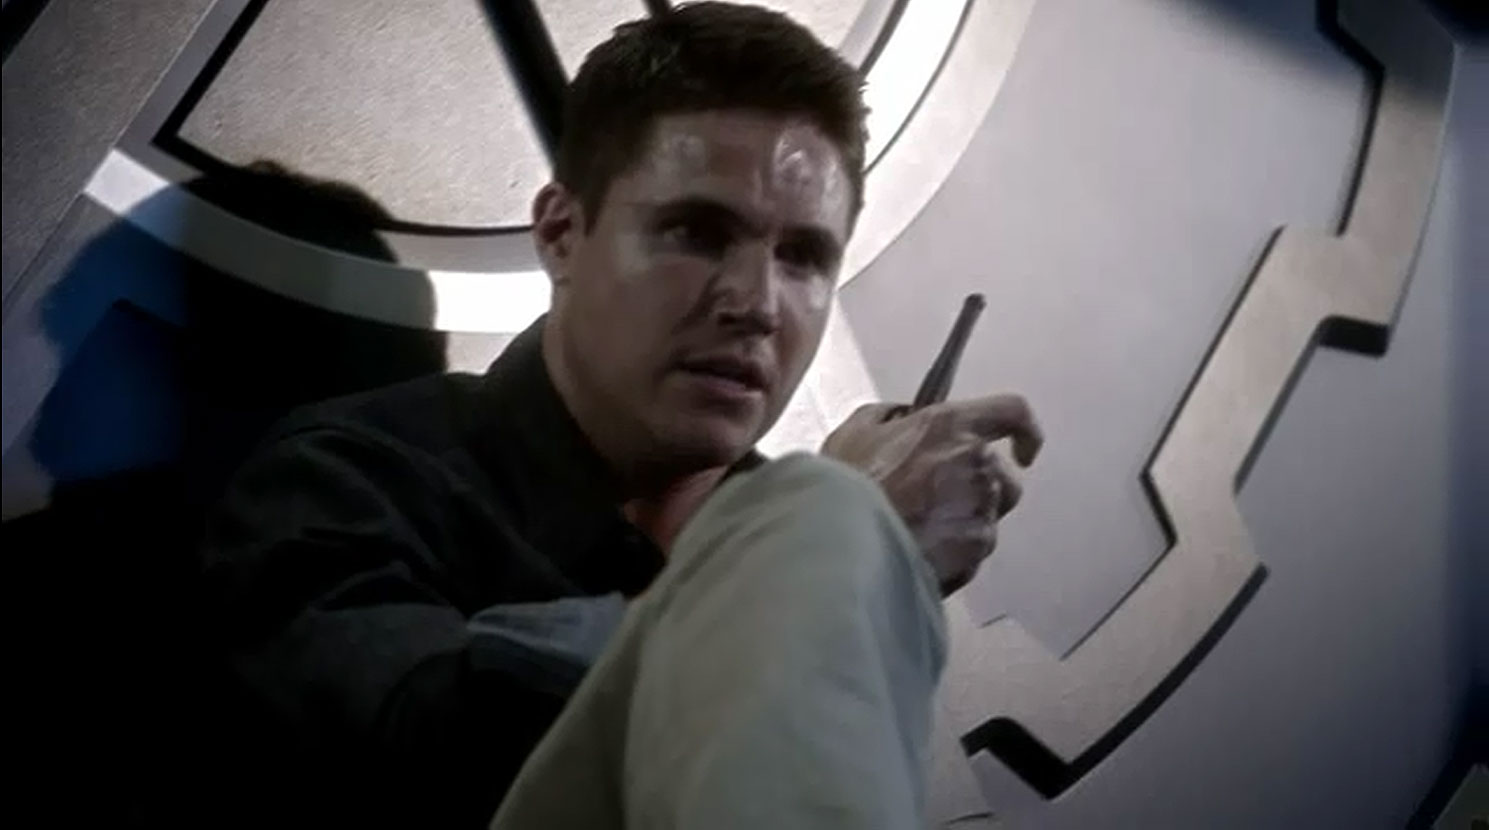 Robbie Amell as Ronnie Raymond in The Flash